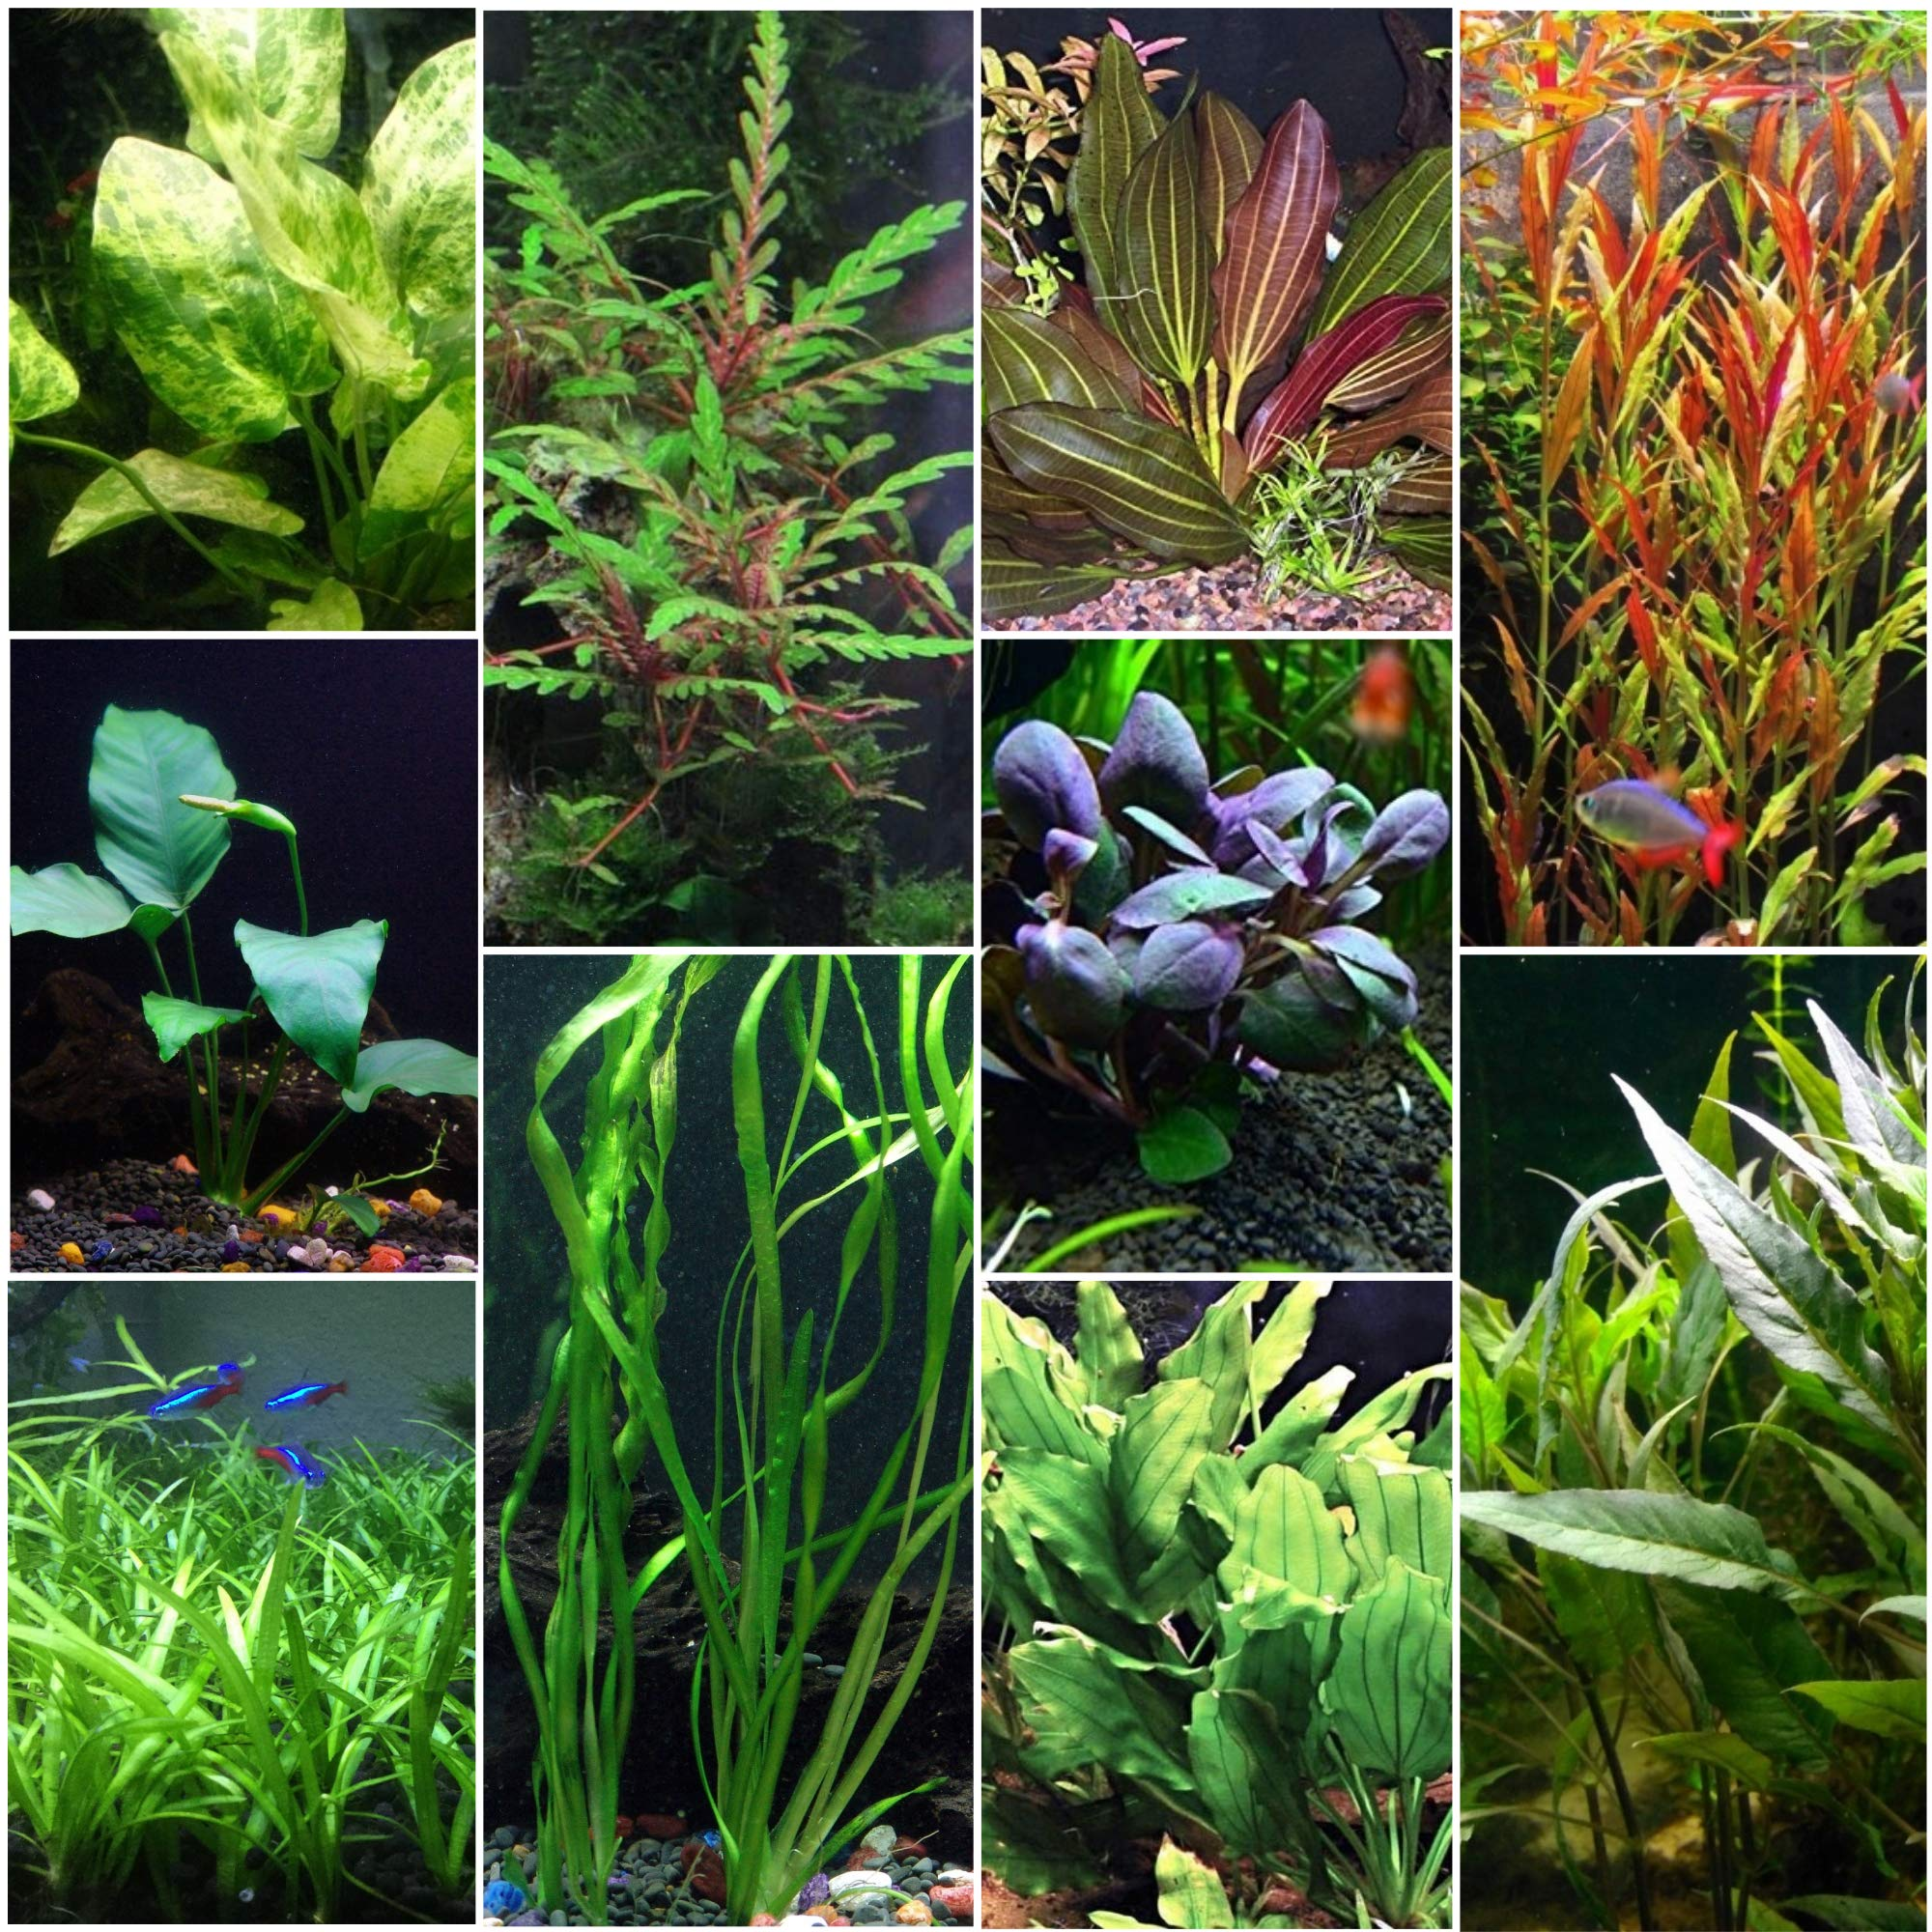 Florida 10 Species Live Aquarium Plants Bundle by AquaLeaf Aquatics